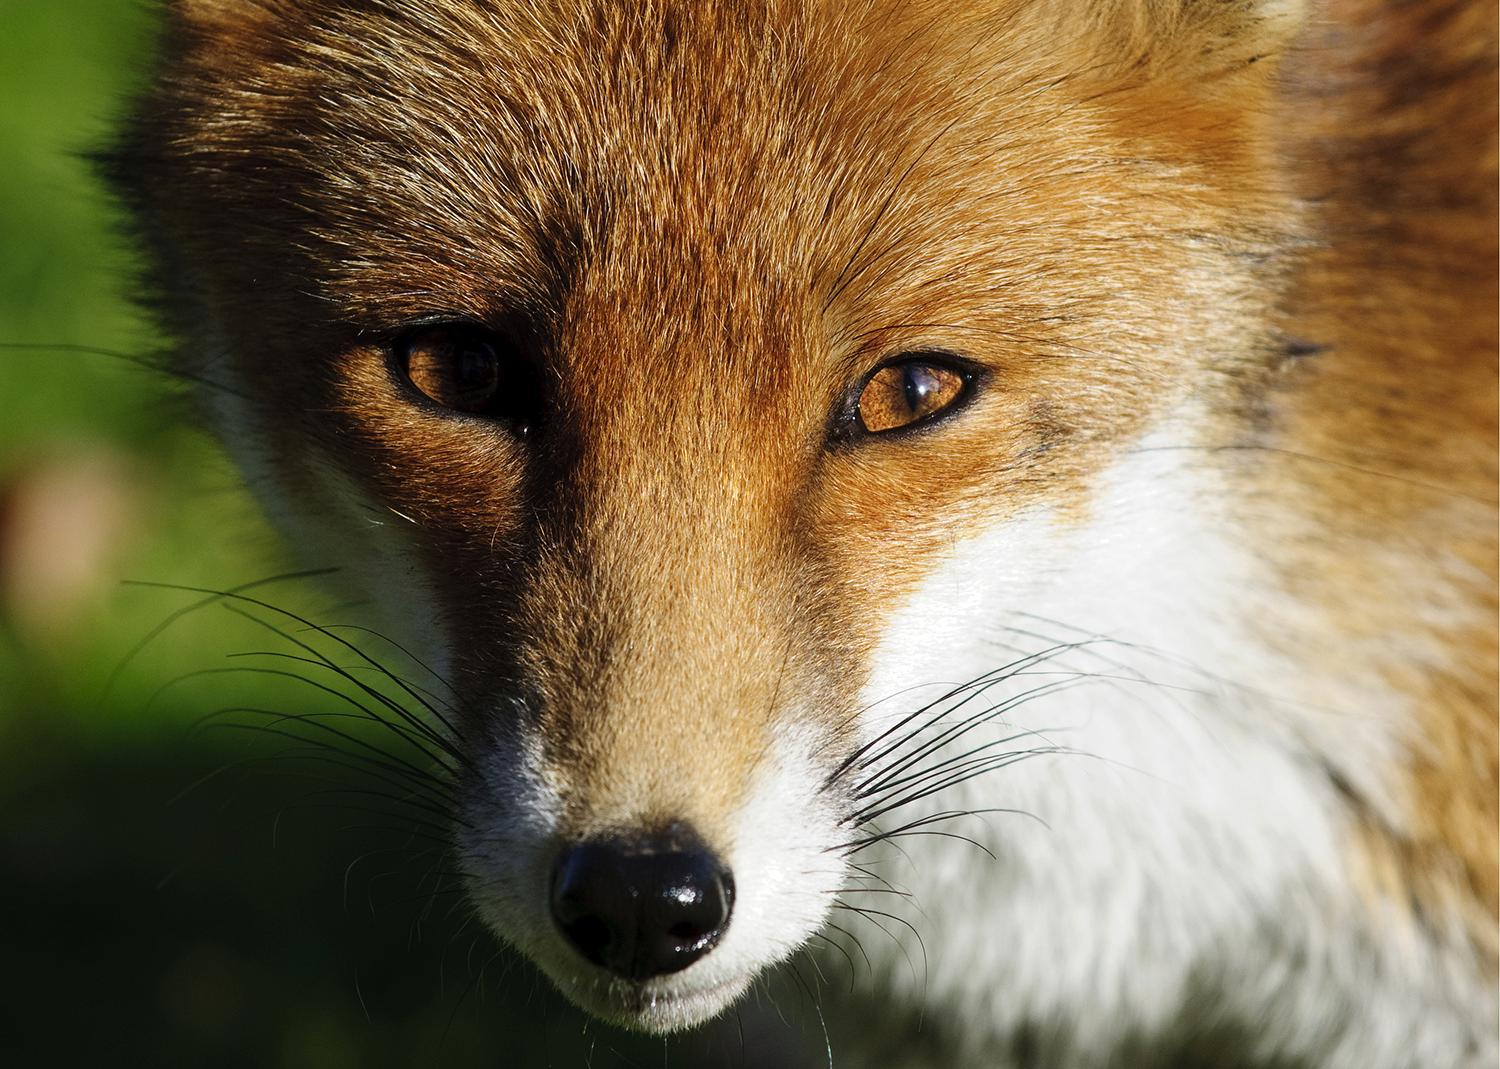 A red fox with a white neck.